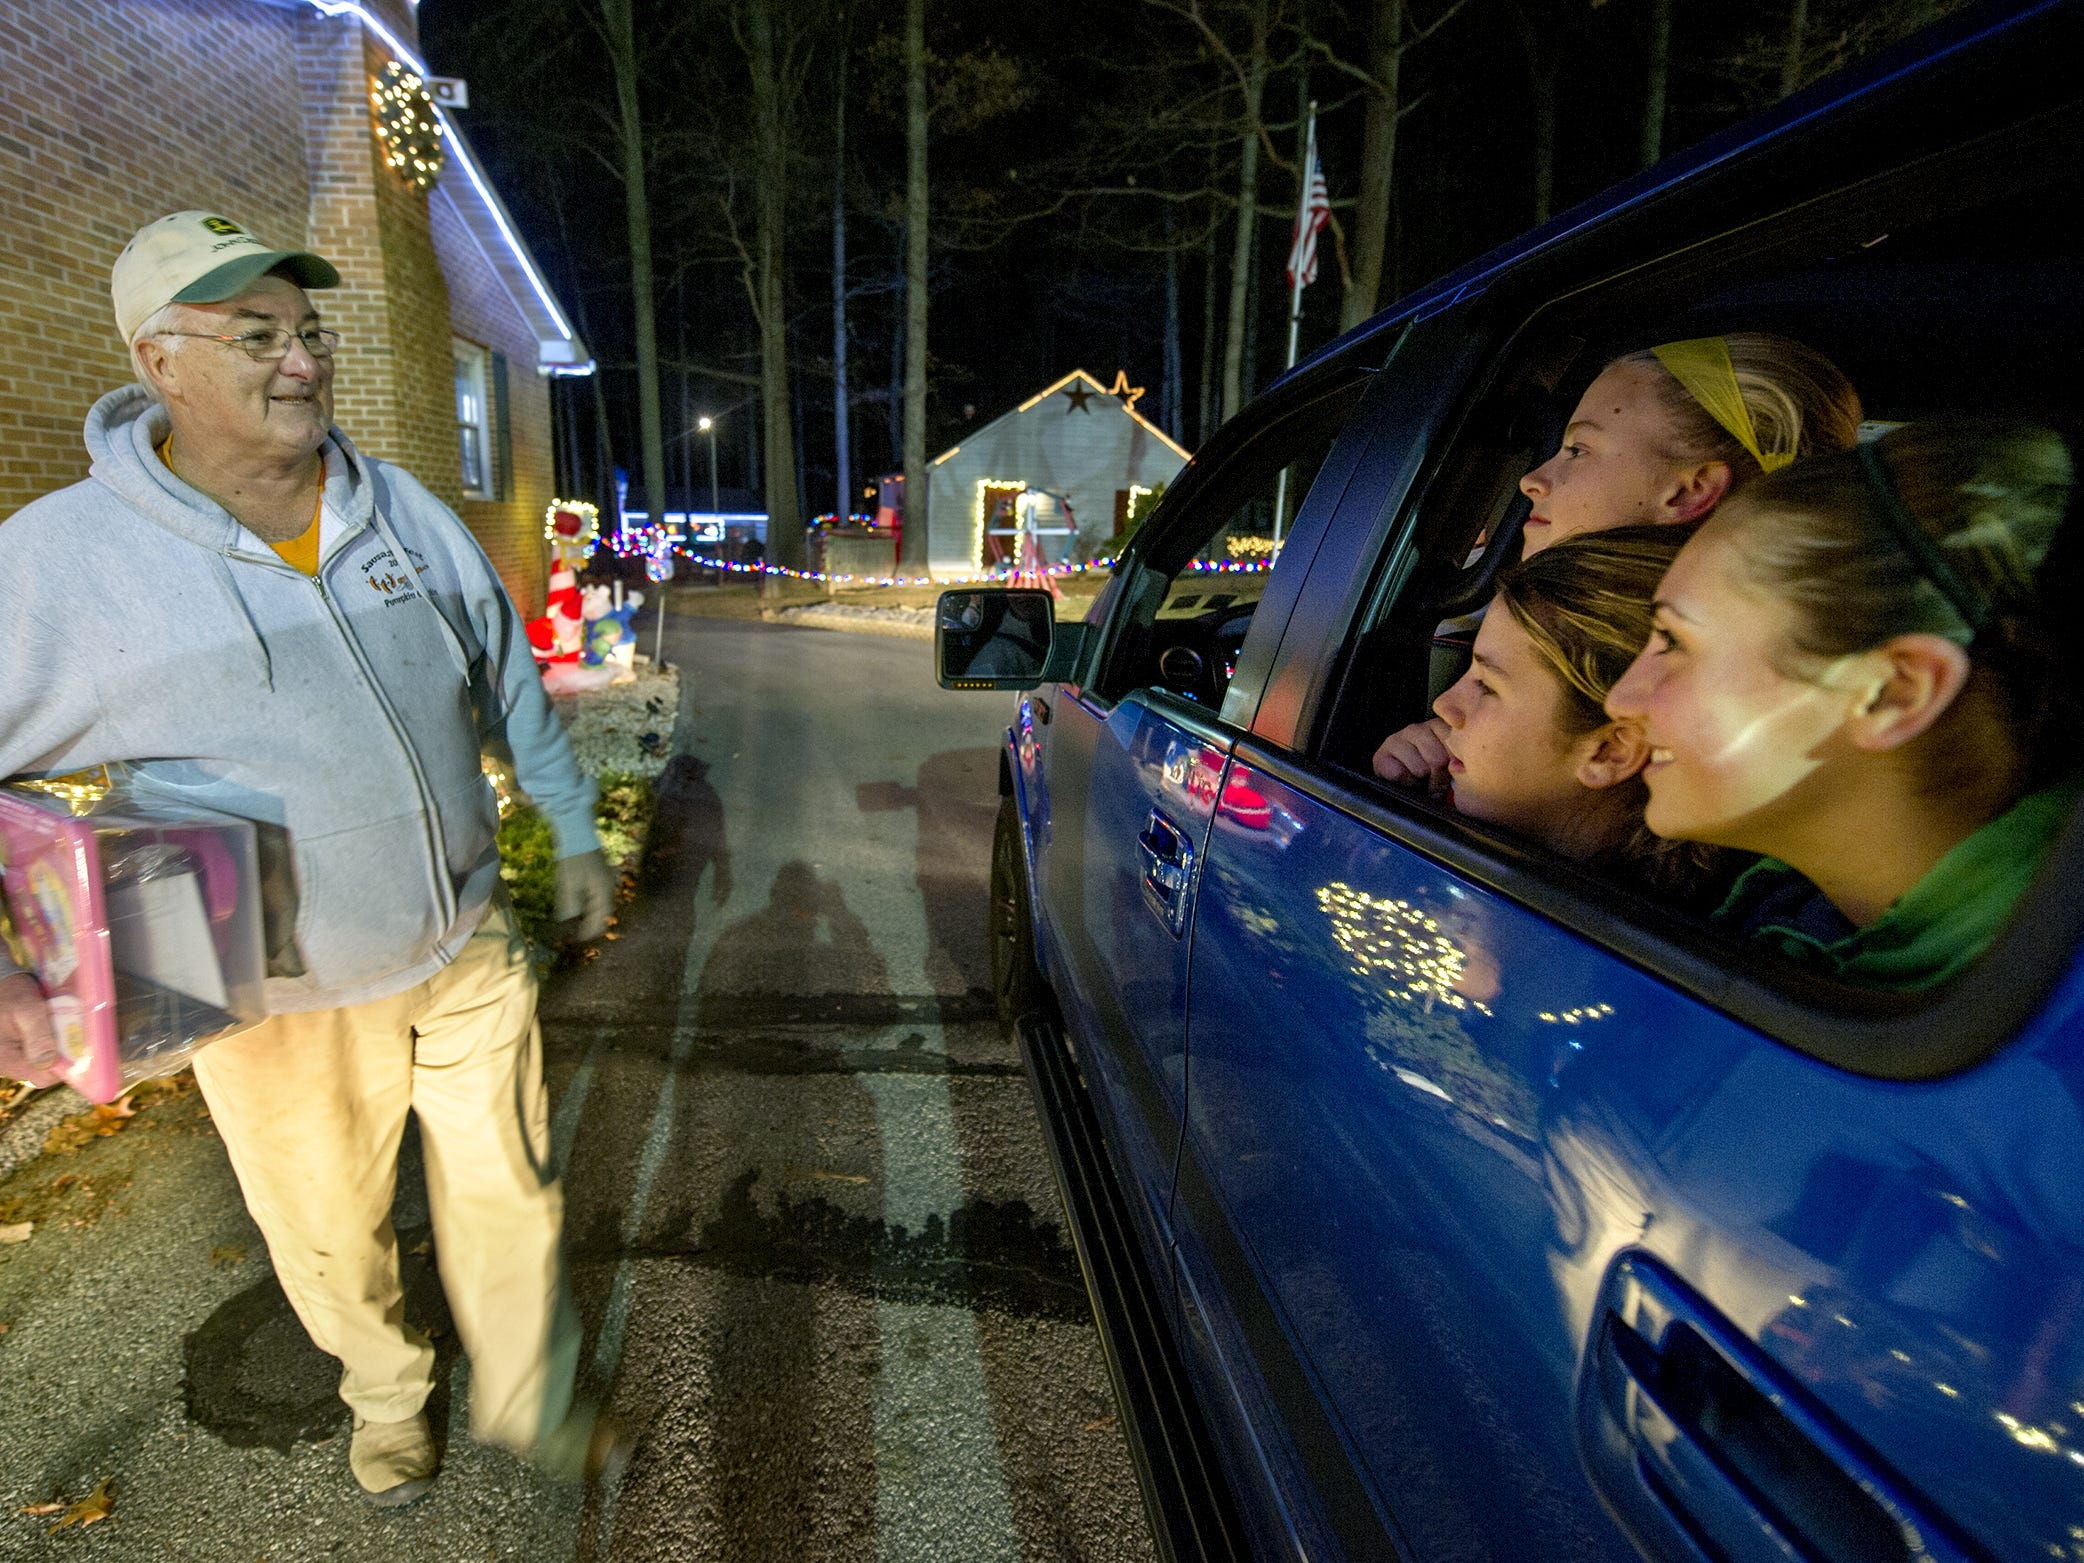 Donnie Webb greets visitors as they drive through his York Township property on December 7, 2015 to look at his Christmas display.